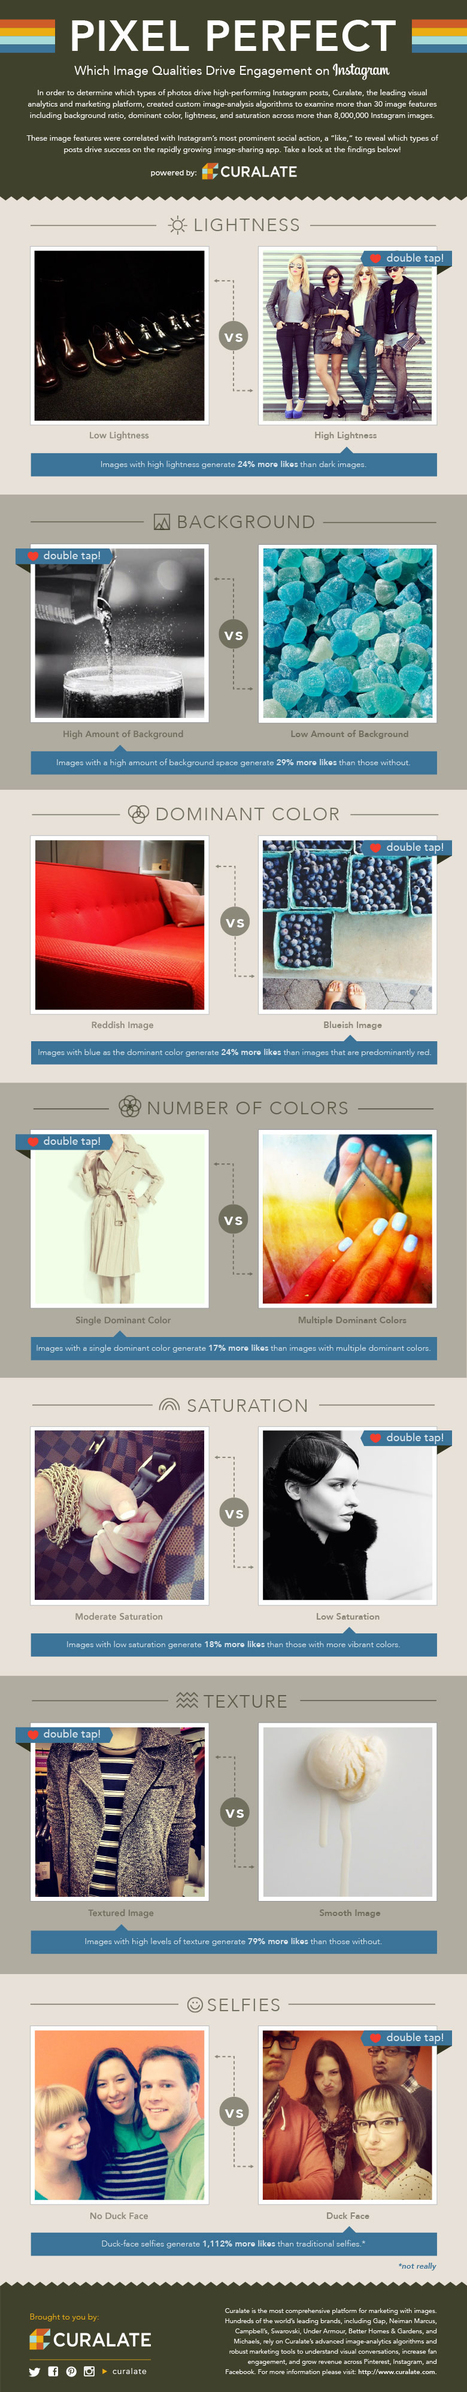 7 Tips To Instagram Photos That Will Get You More Likes (Infographic) | All About Social Media! | Scoop.it